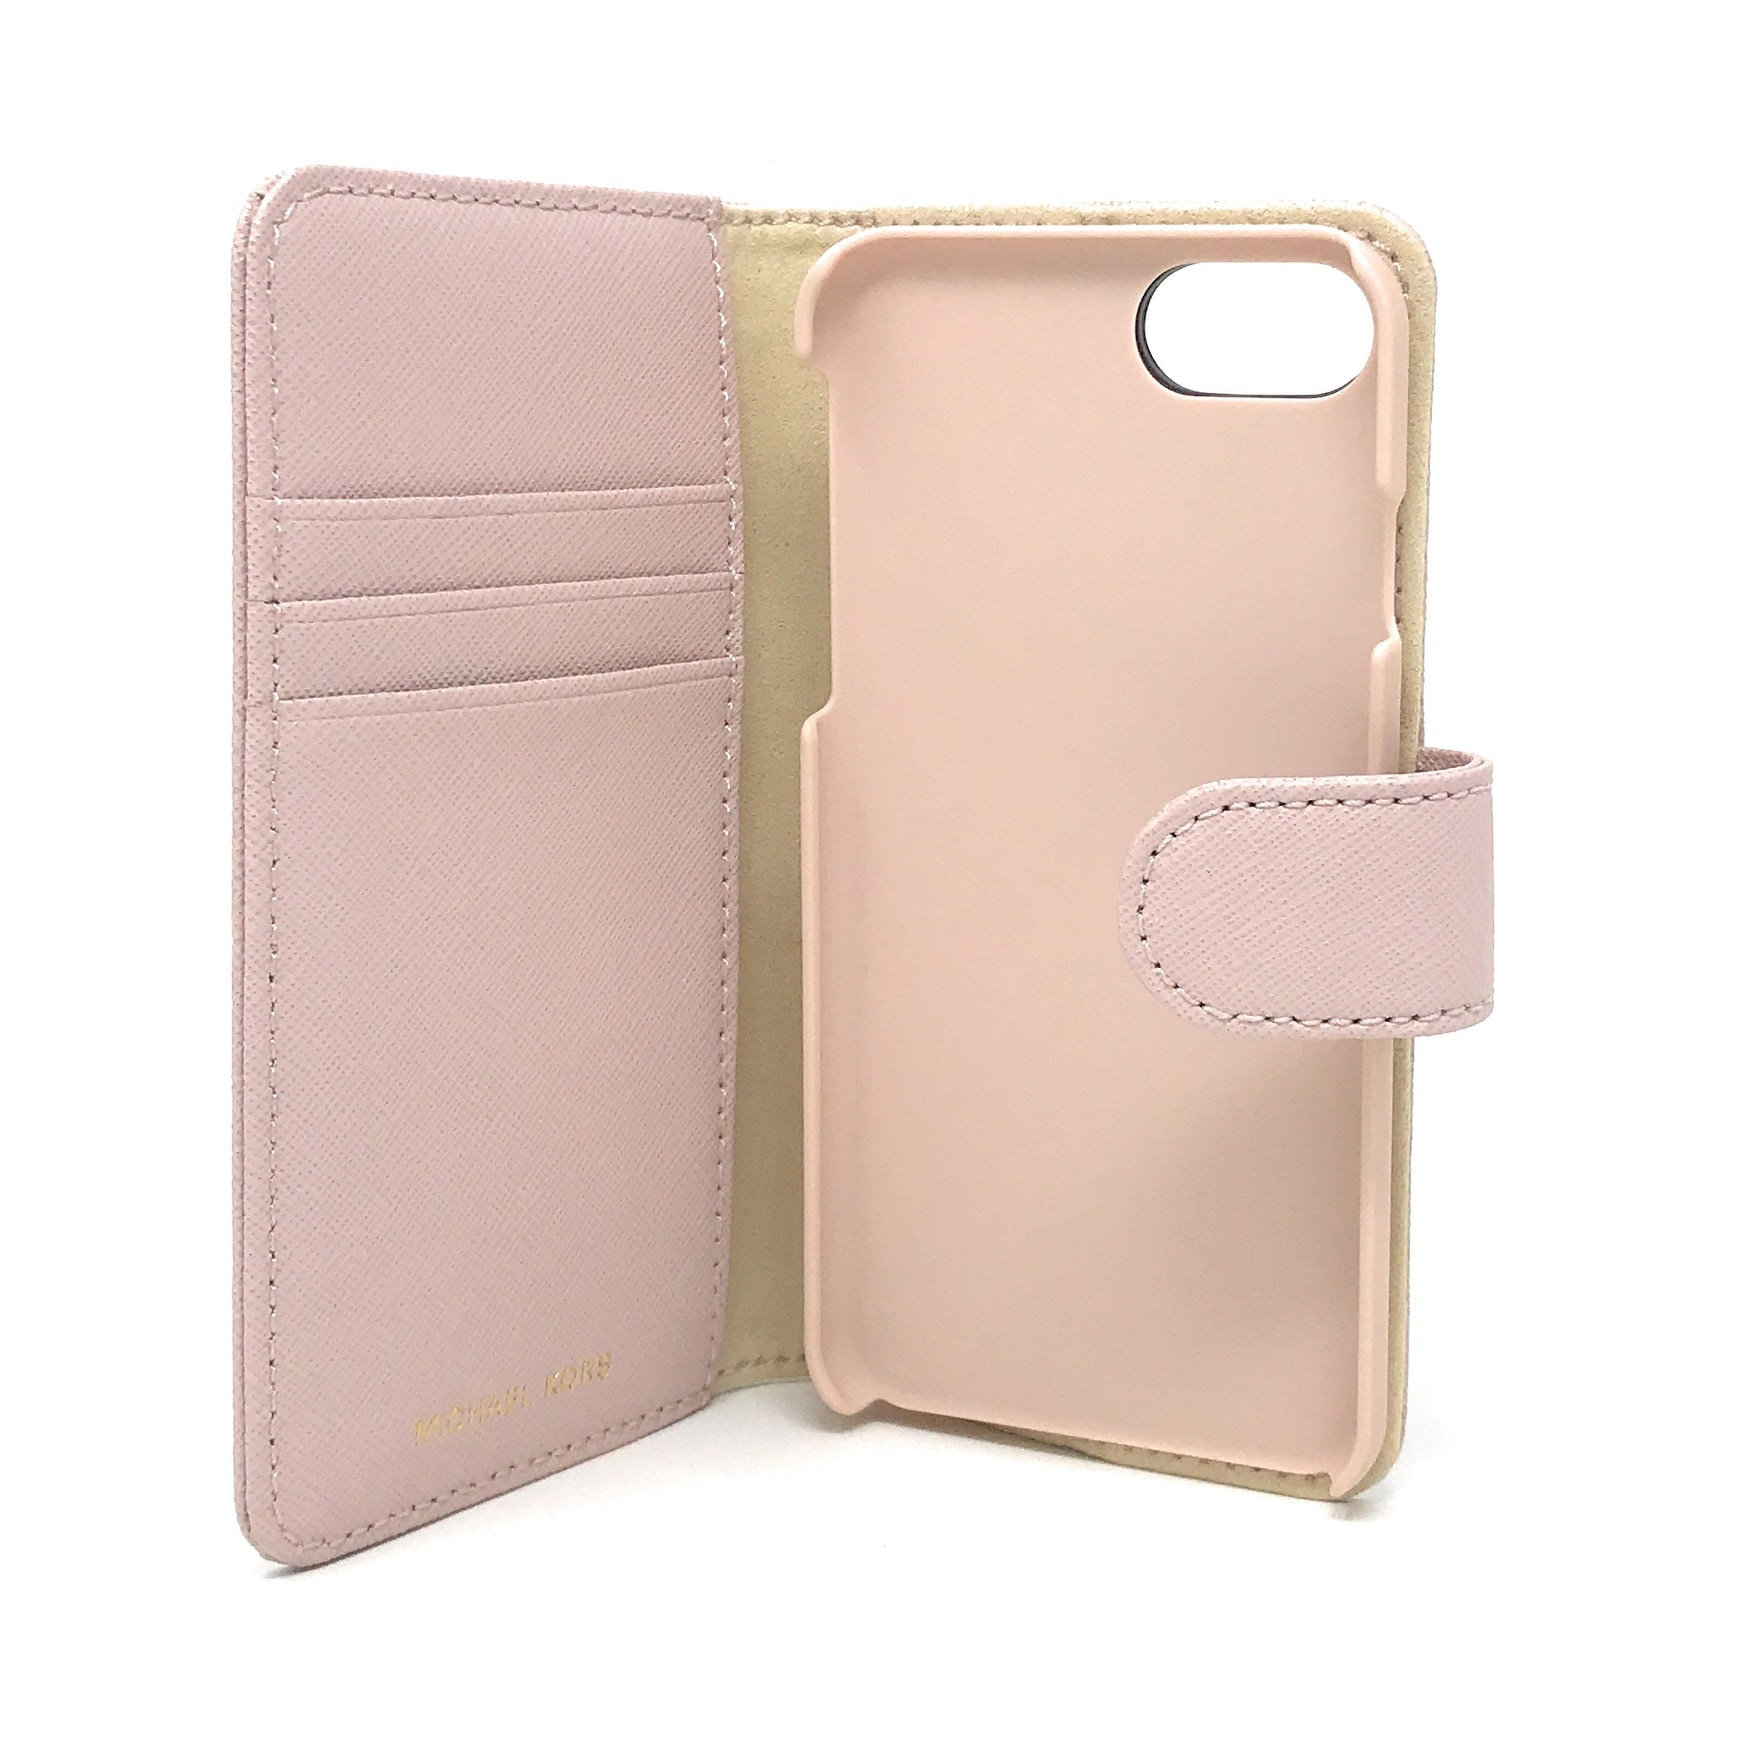 98eebc630a69 Shop Michael Kors Electronic Leather Folio Phone Case for iPhone 8   iPhone  7 - Free Shipping Today - Overstock - 23620825